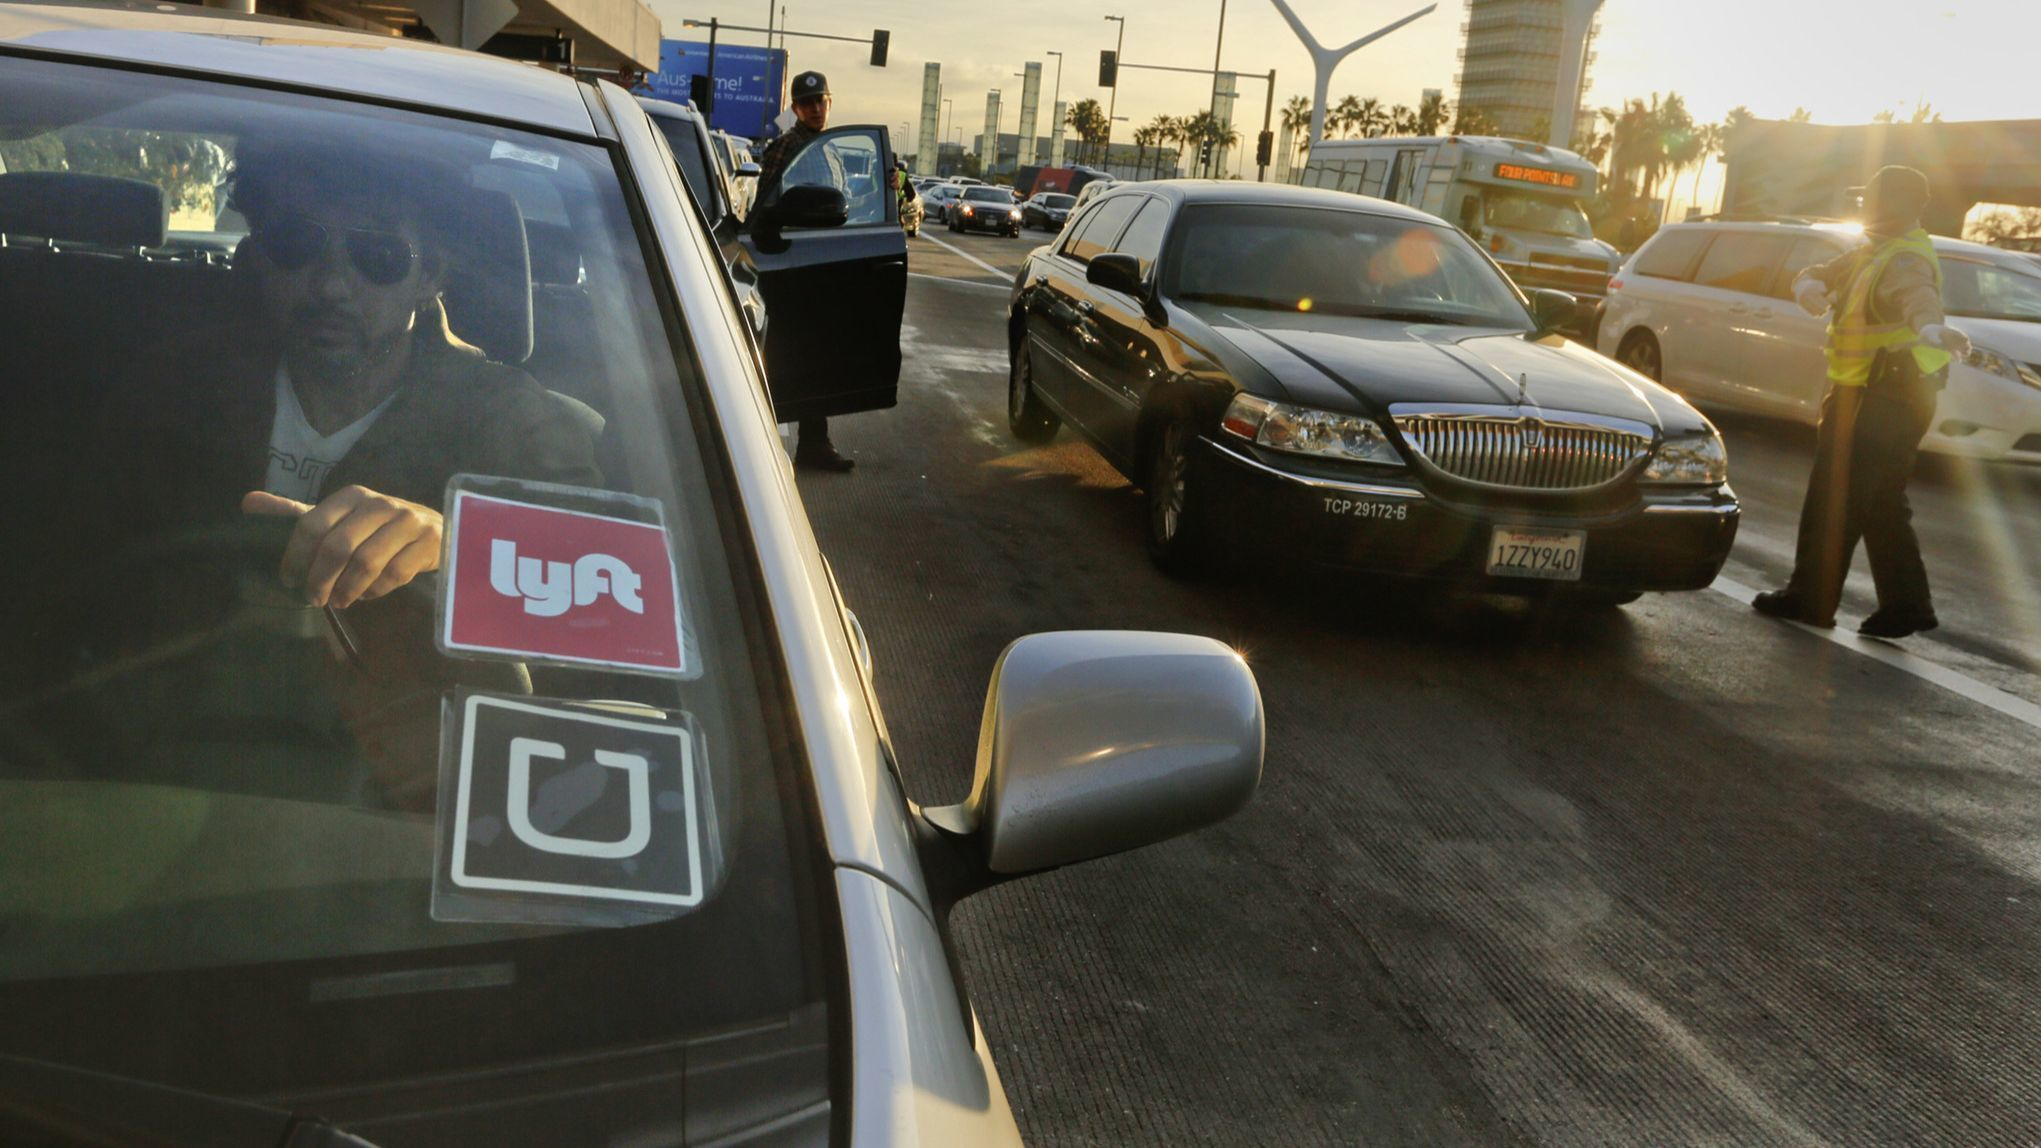 How To Stay Safe While Riding Uber And Lyft